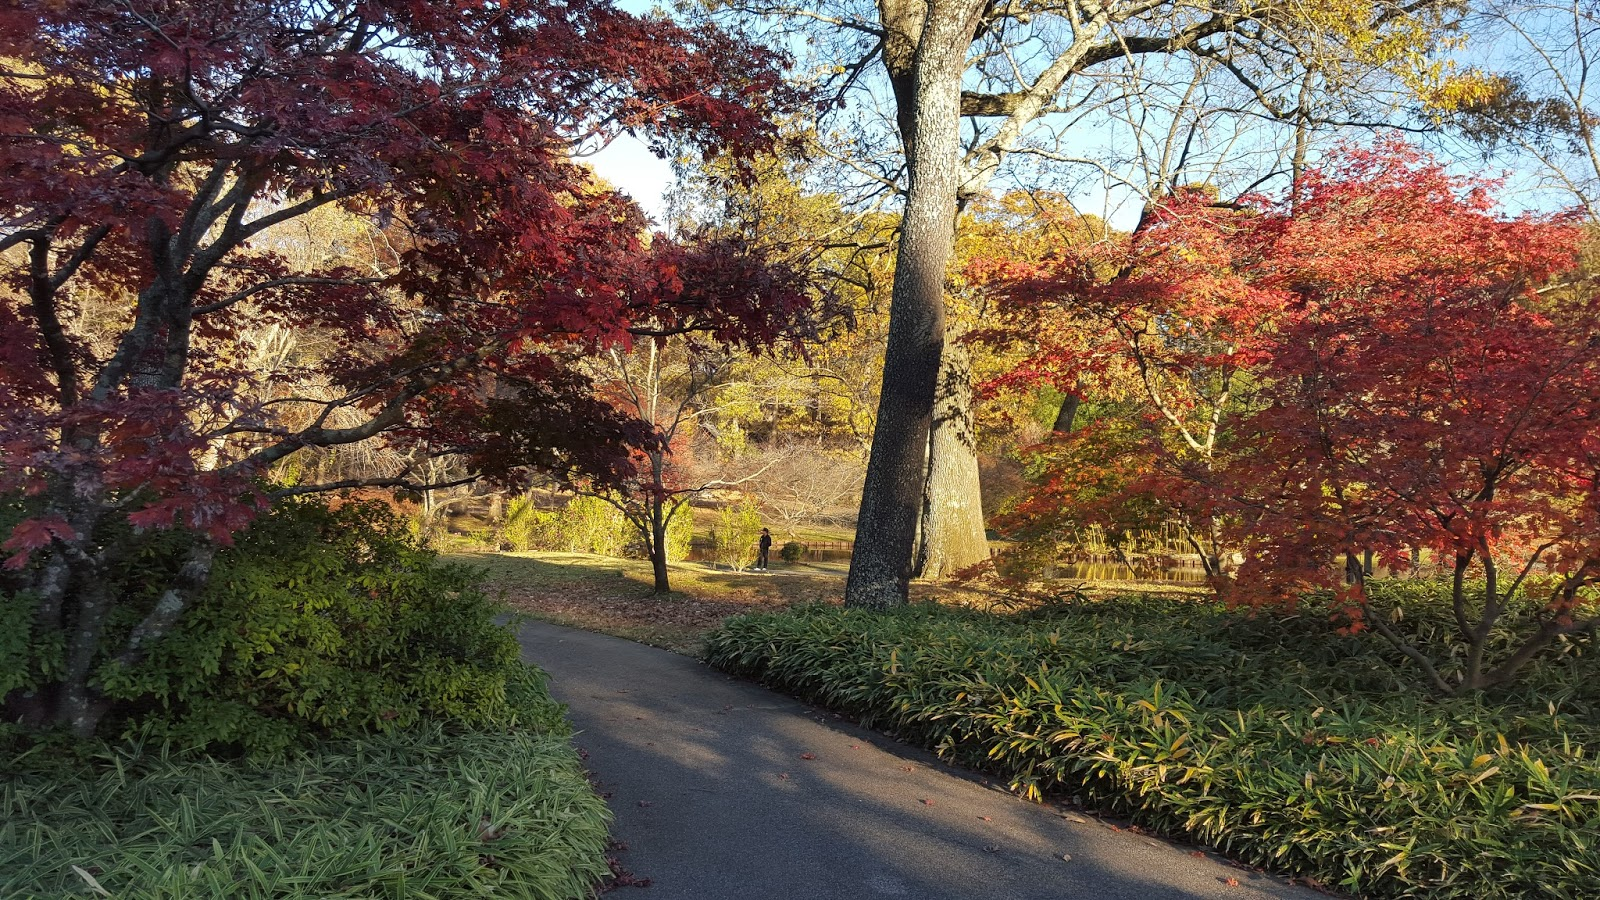 Divers and Sundry: Memphis Botanic Garden in the Fall